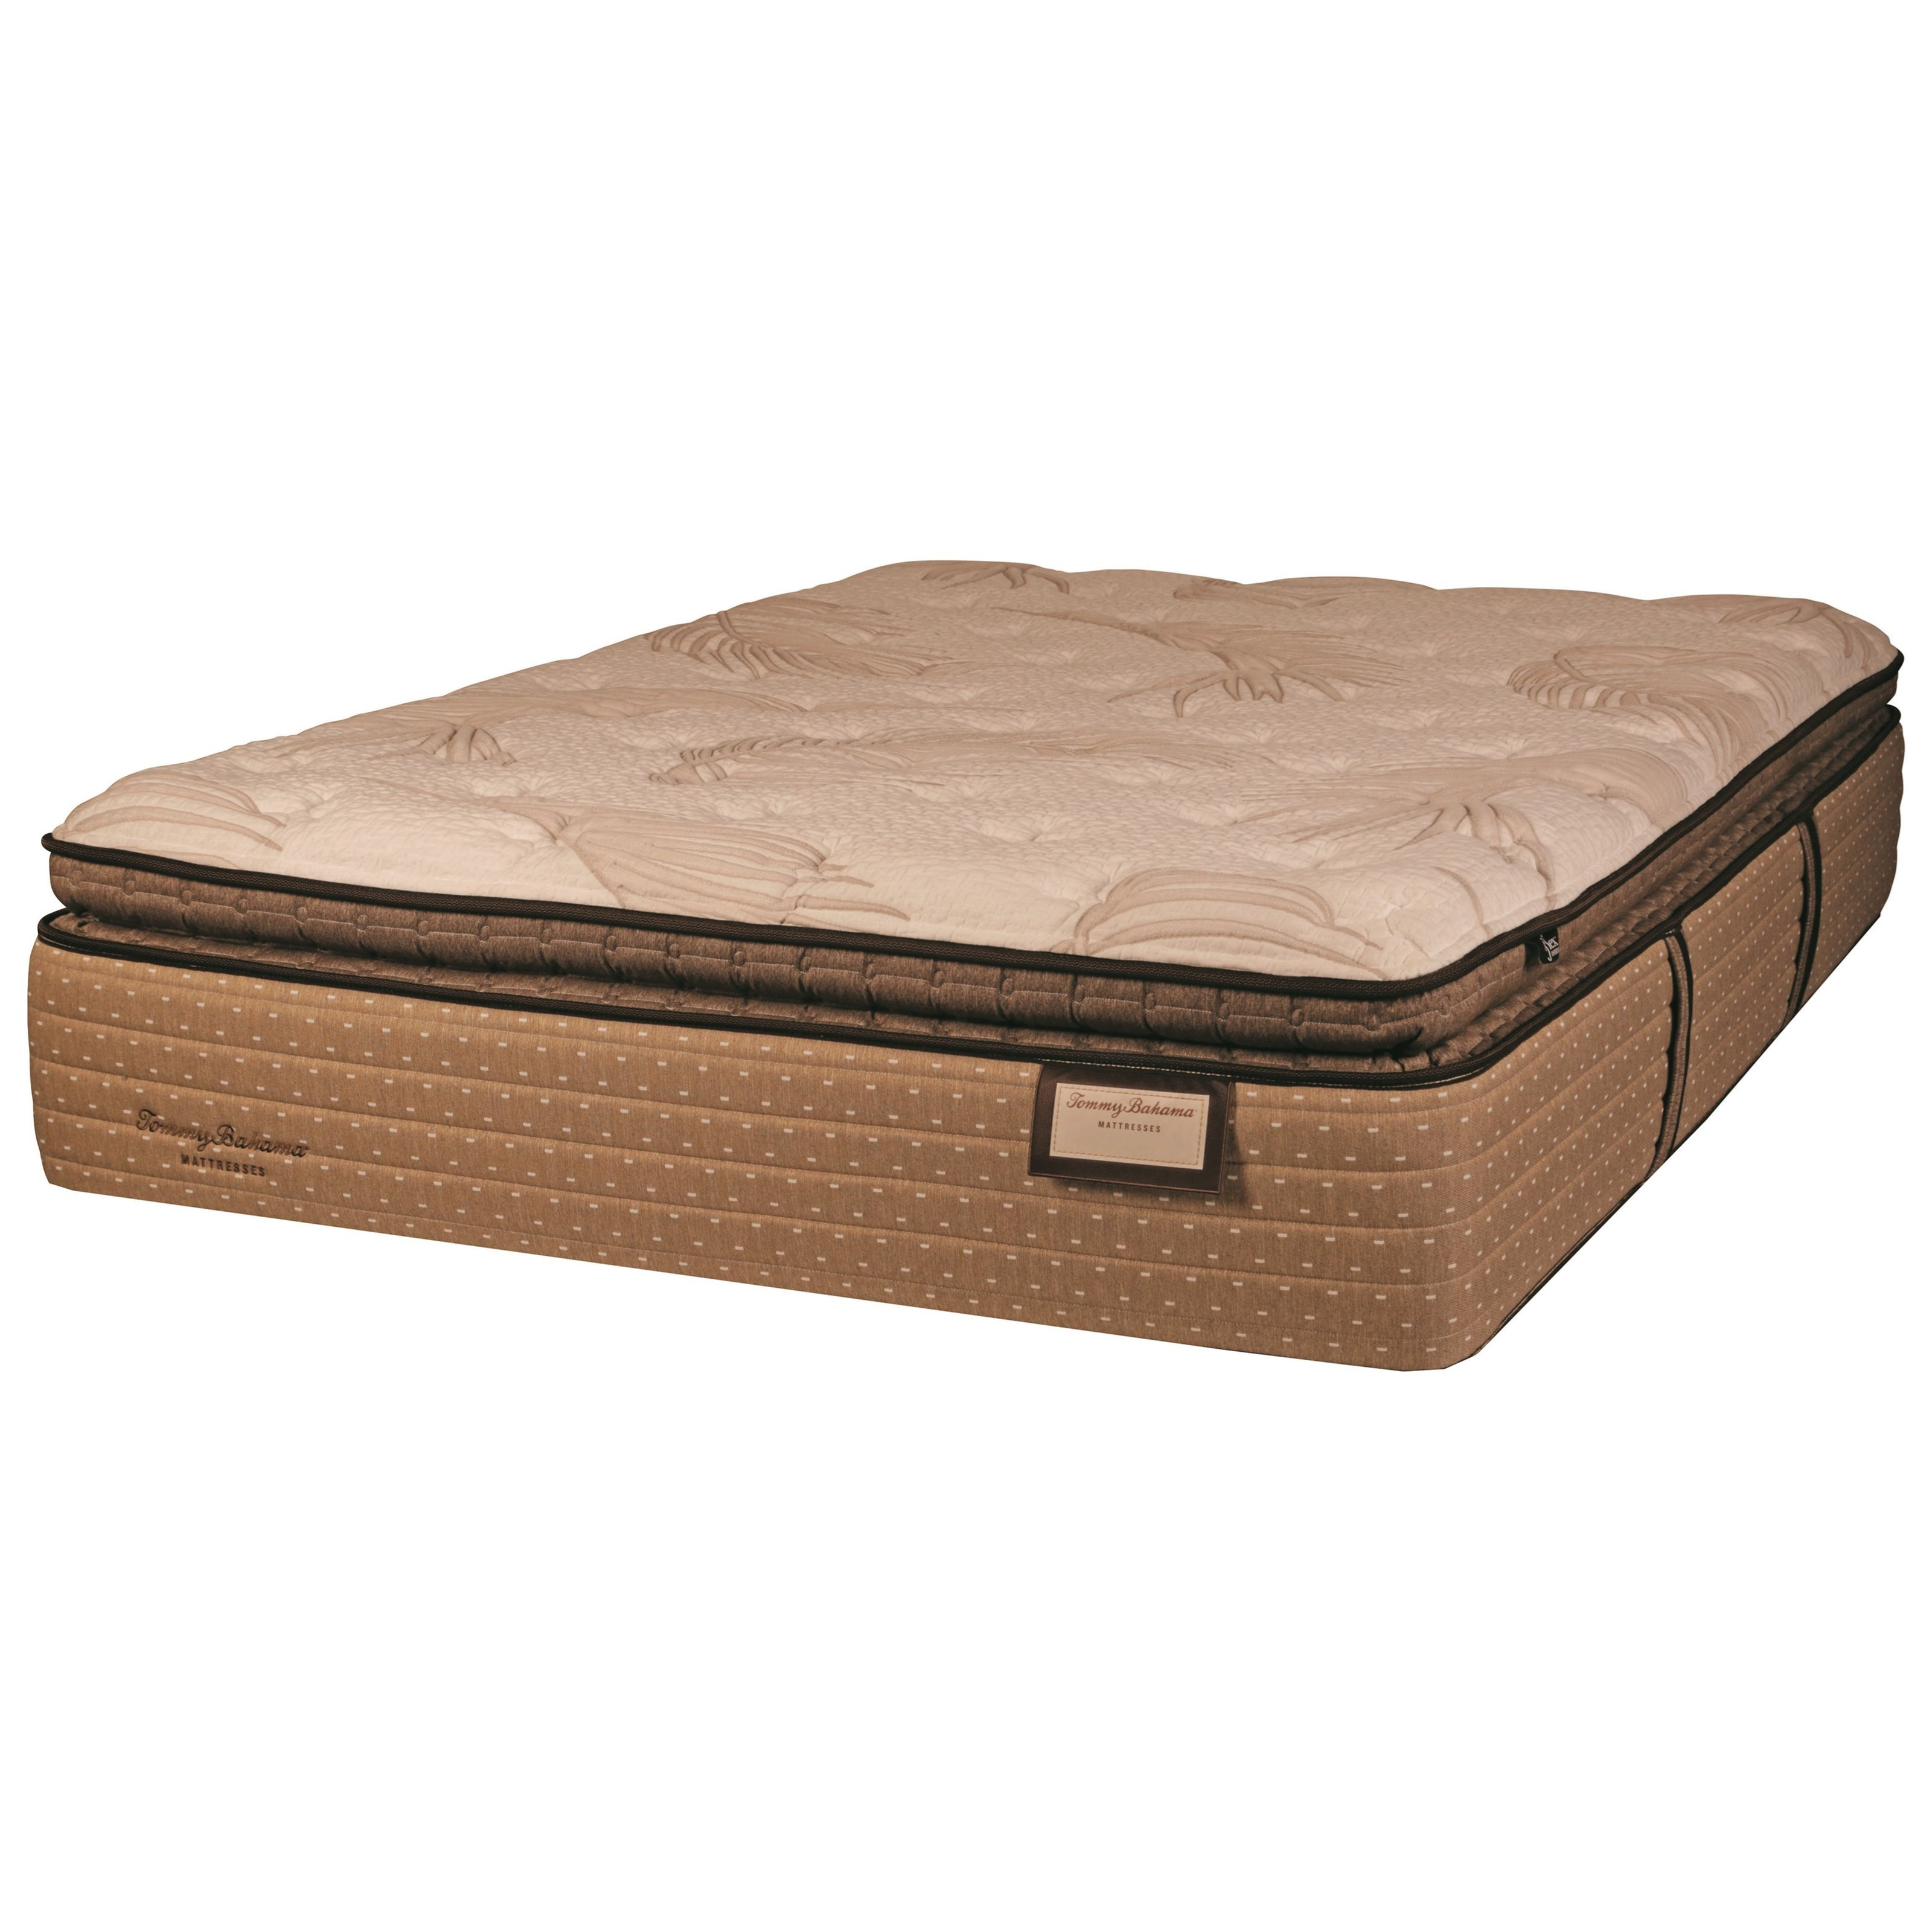 Tommy Bahama Sea Shell Wishes PT King Pillow Top Luxury Mattress by Therapedic at Nassau Furniture and Mattress